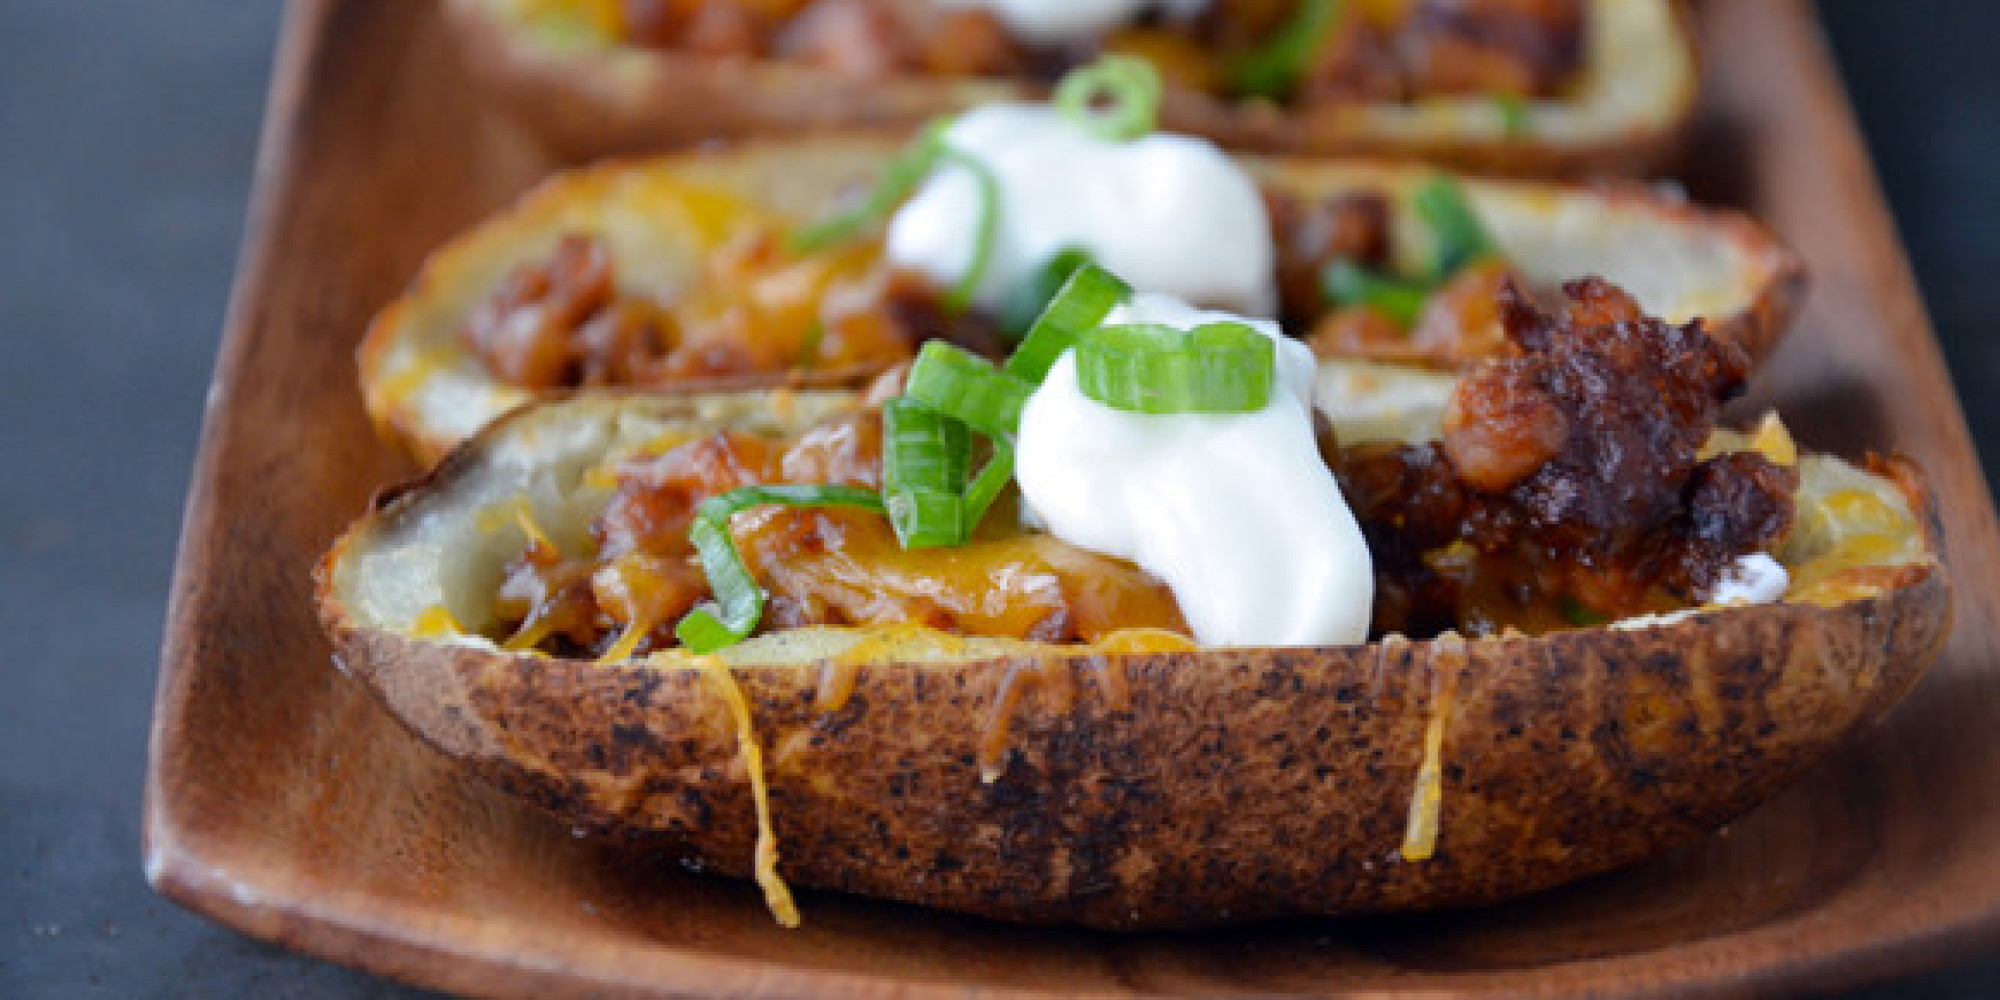 Ready For A Next-Level Potato Skins Recipe? (PHOTOS)